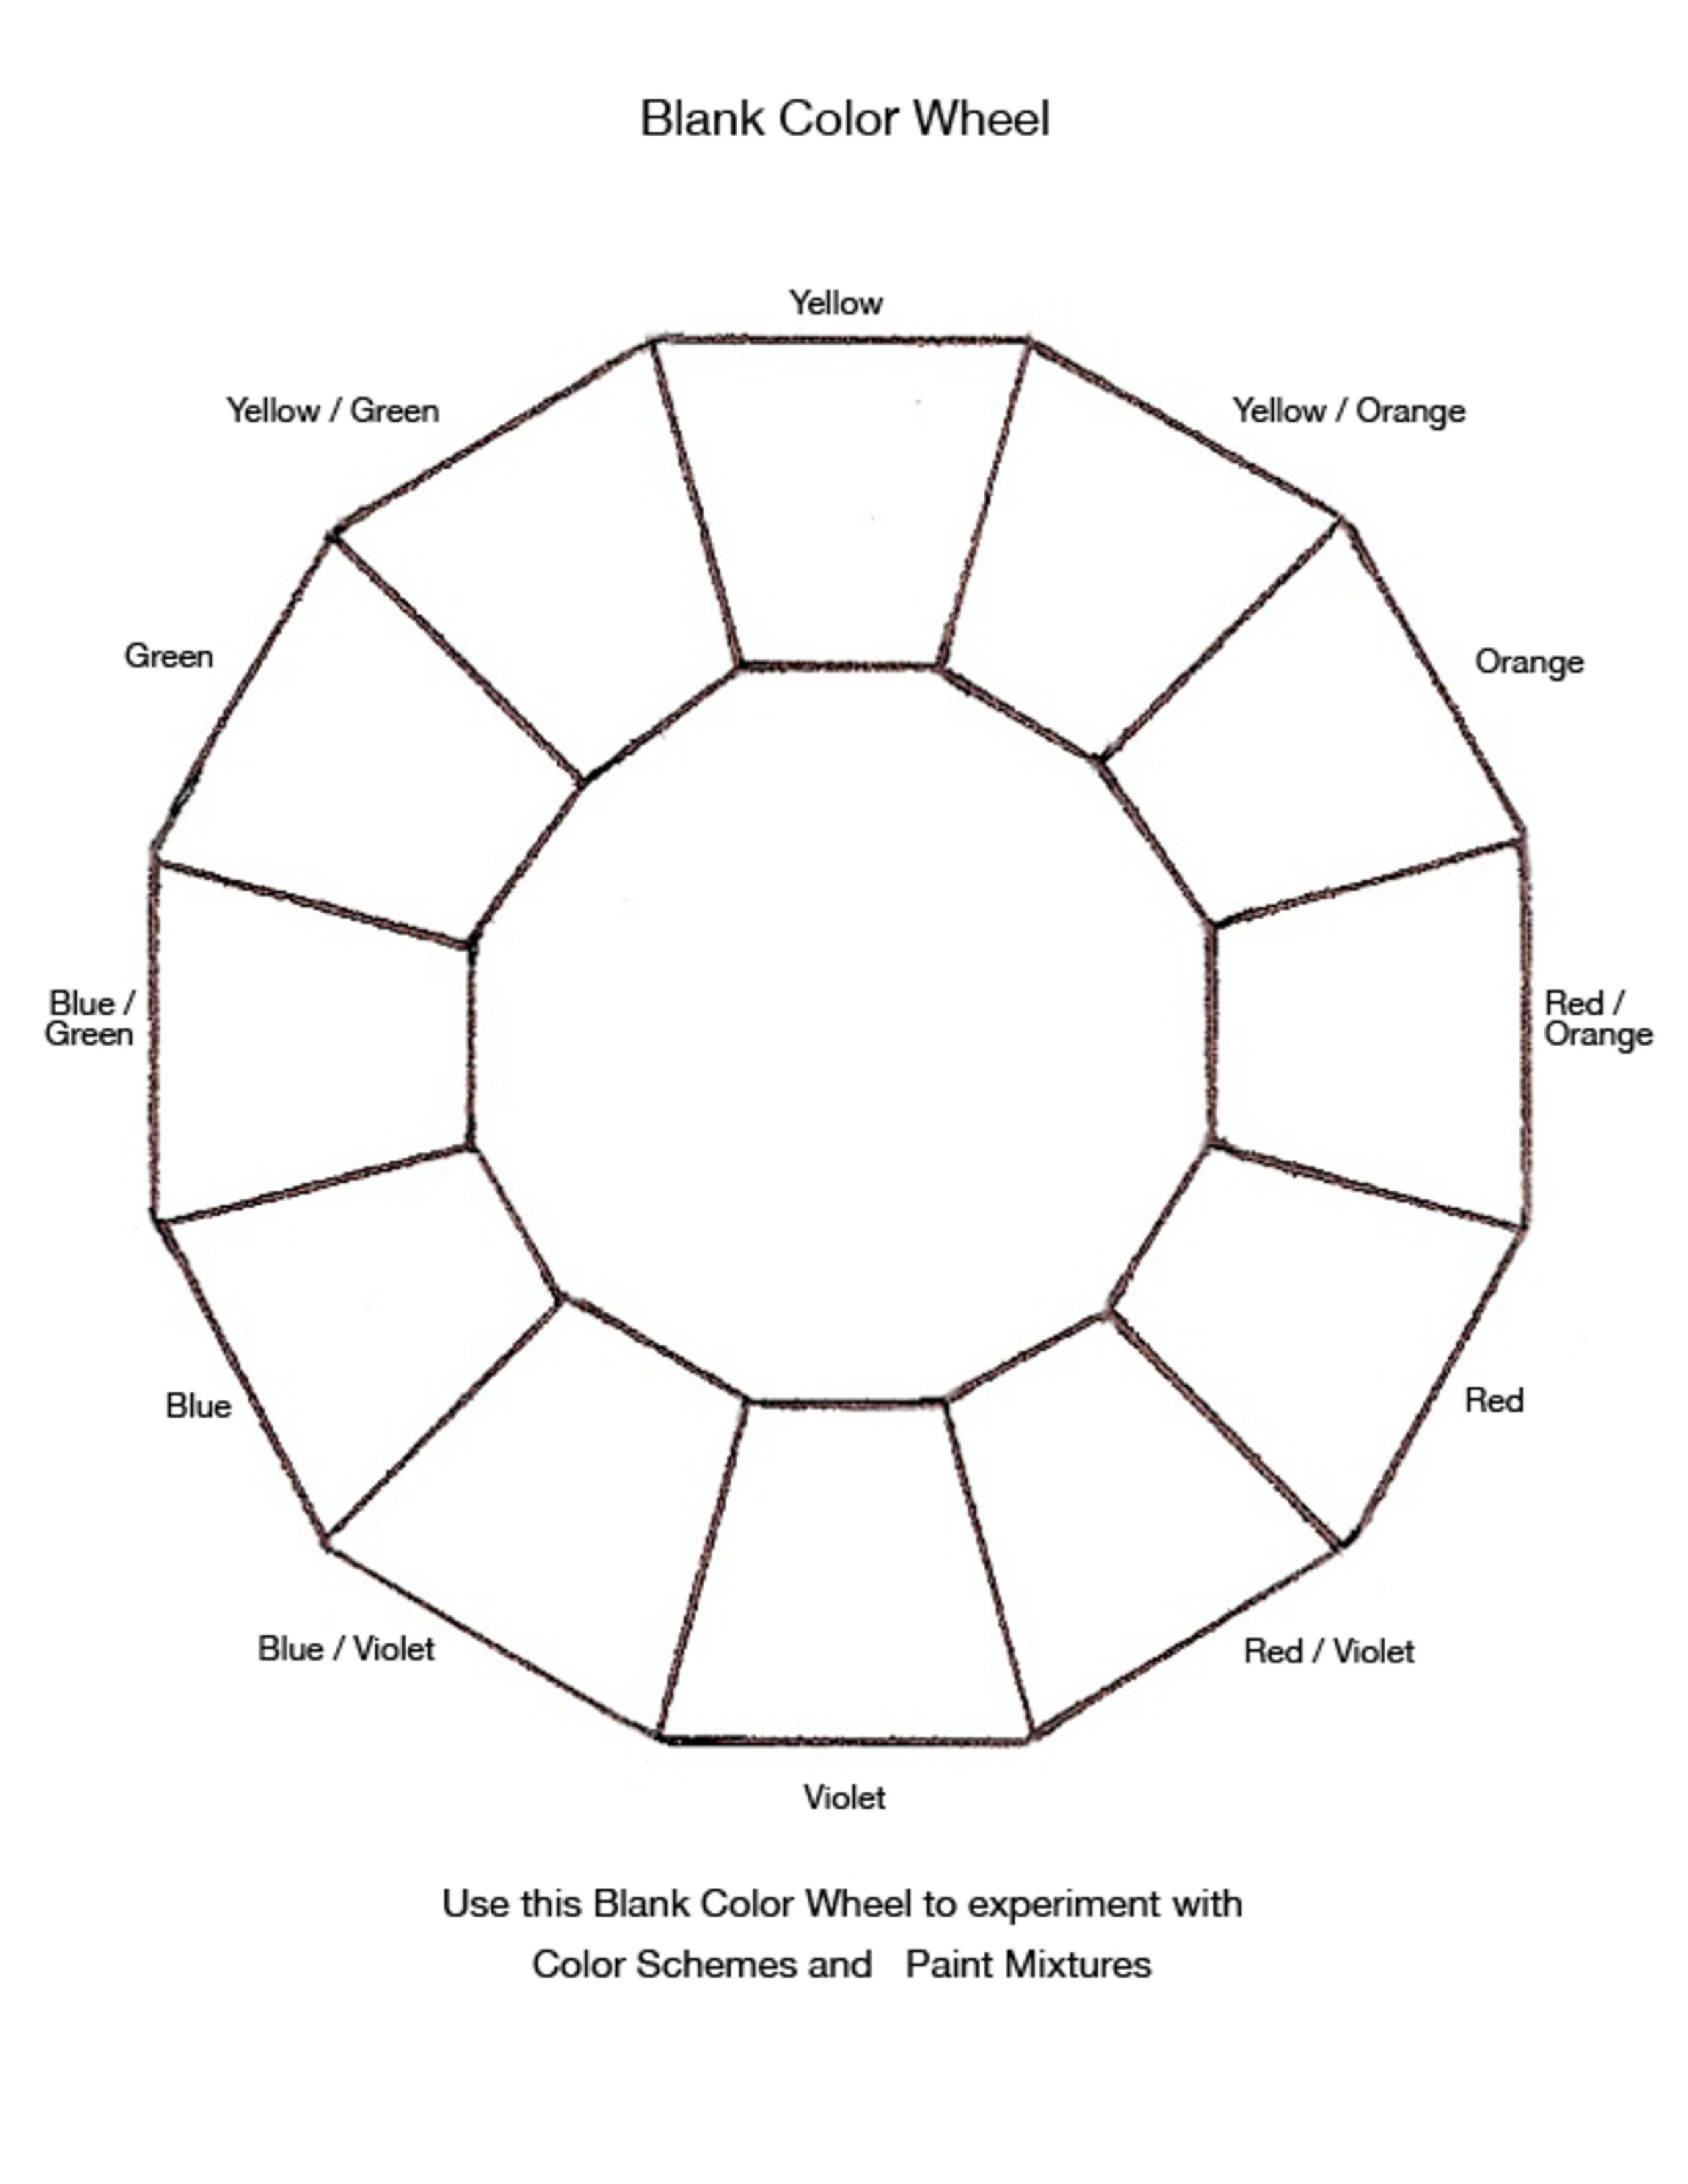 Free Blank Color Wheel Chart Templates At Allbusinesstemplates